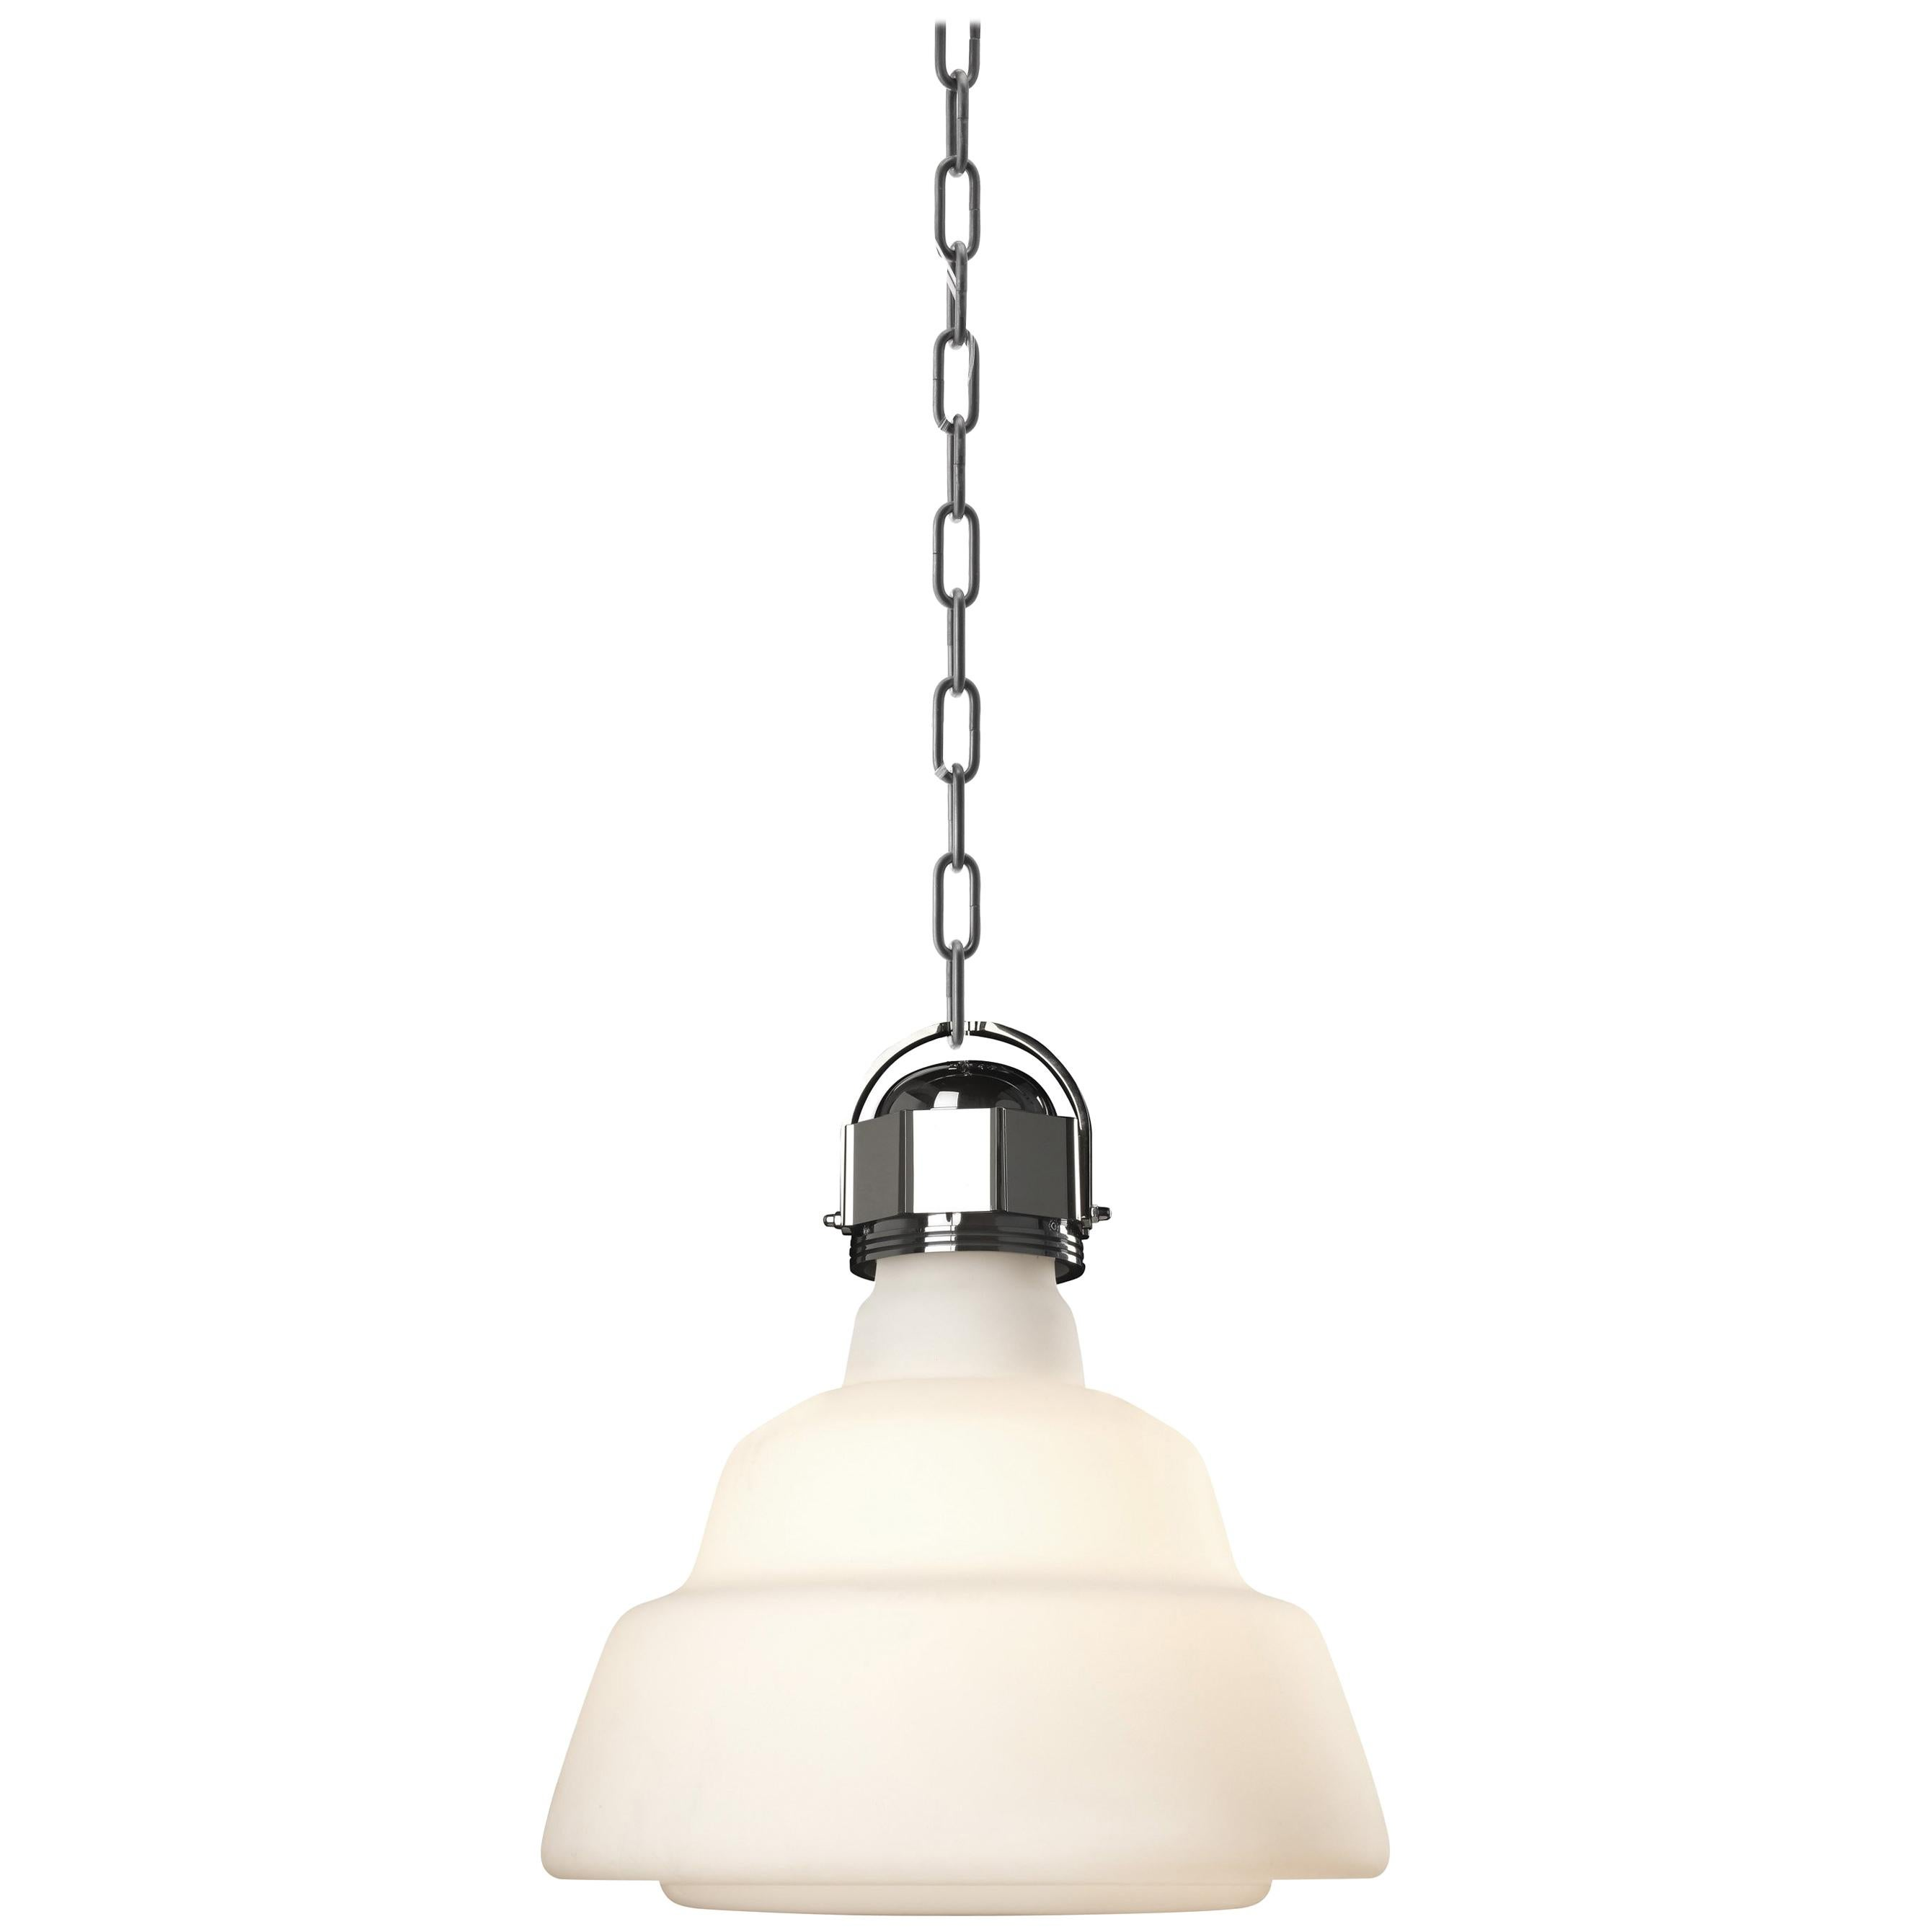 Foscarini Lights Foscarini Large Glas Suspension Lamp In White By Diesel